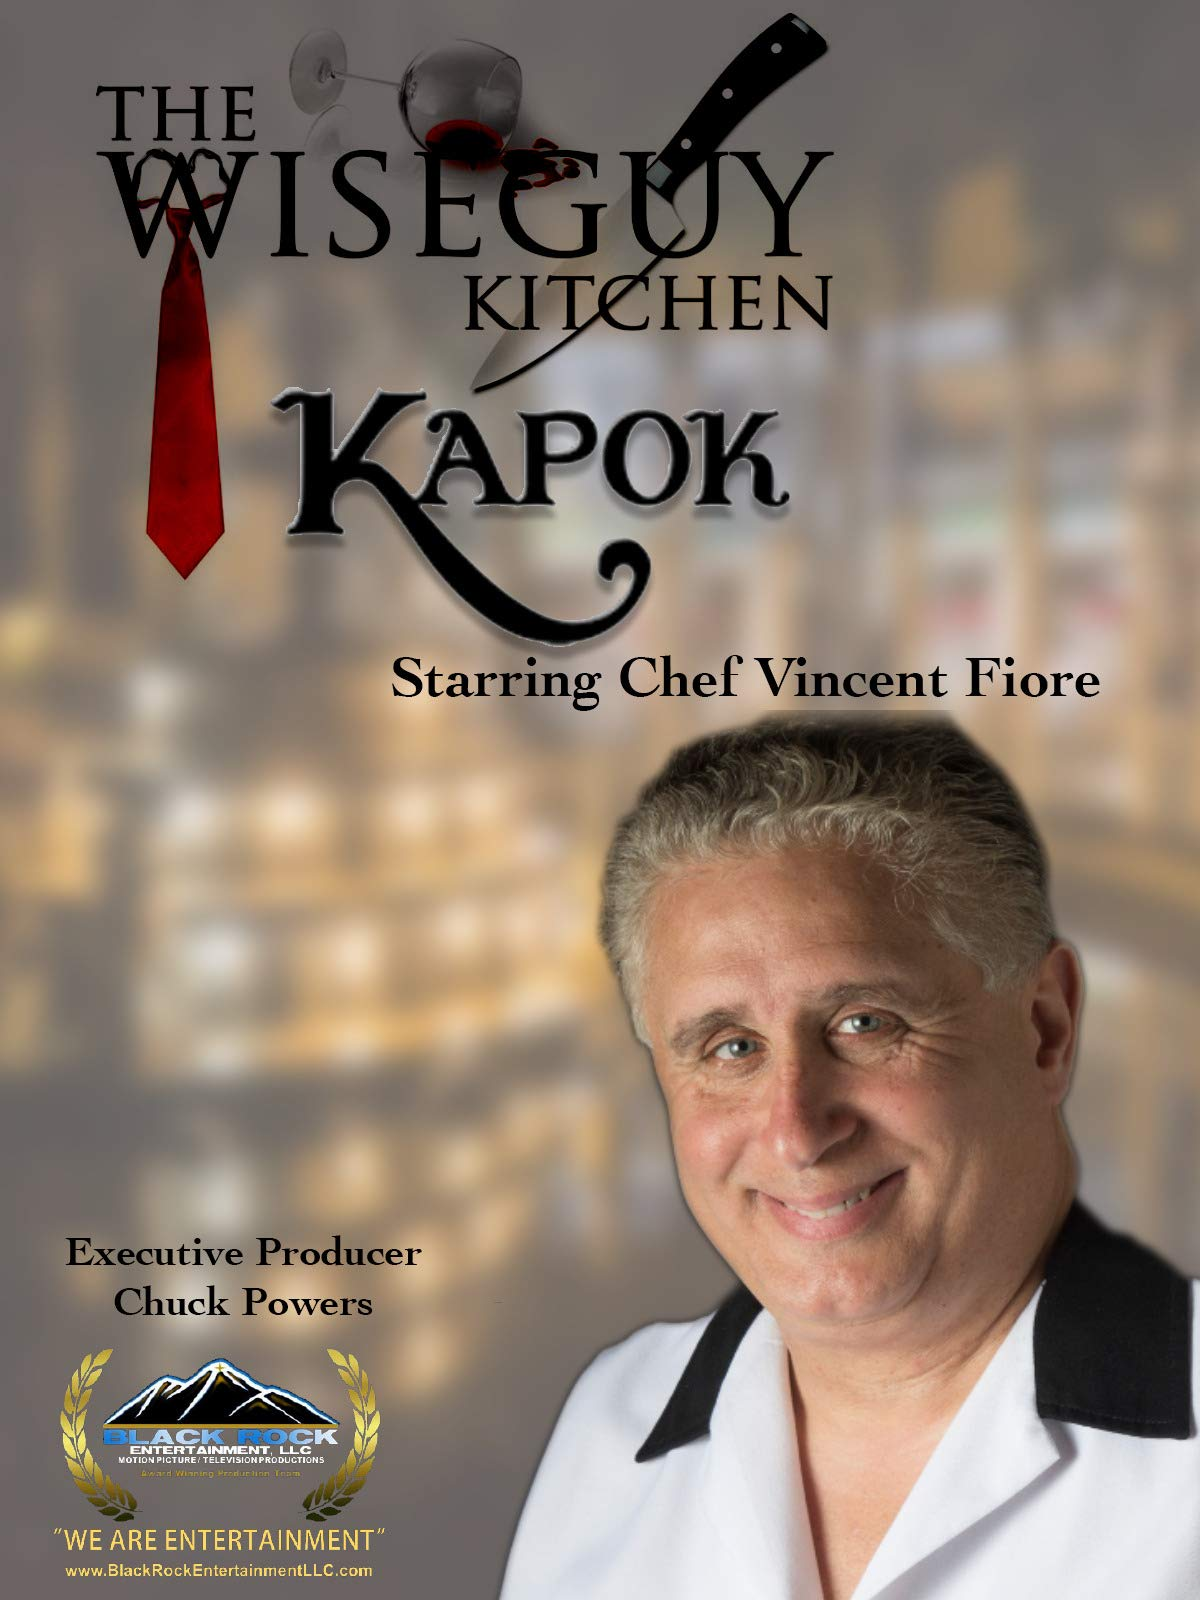 The Wiseguy Kitchen Show: Kapok Special Events